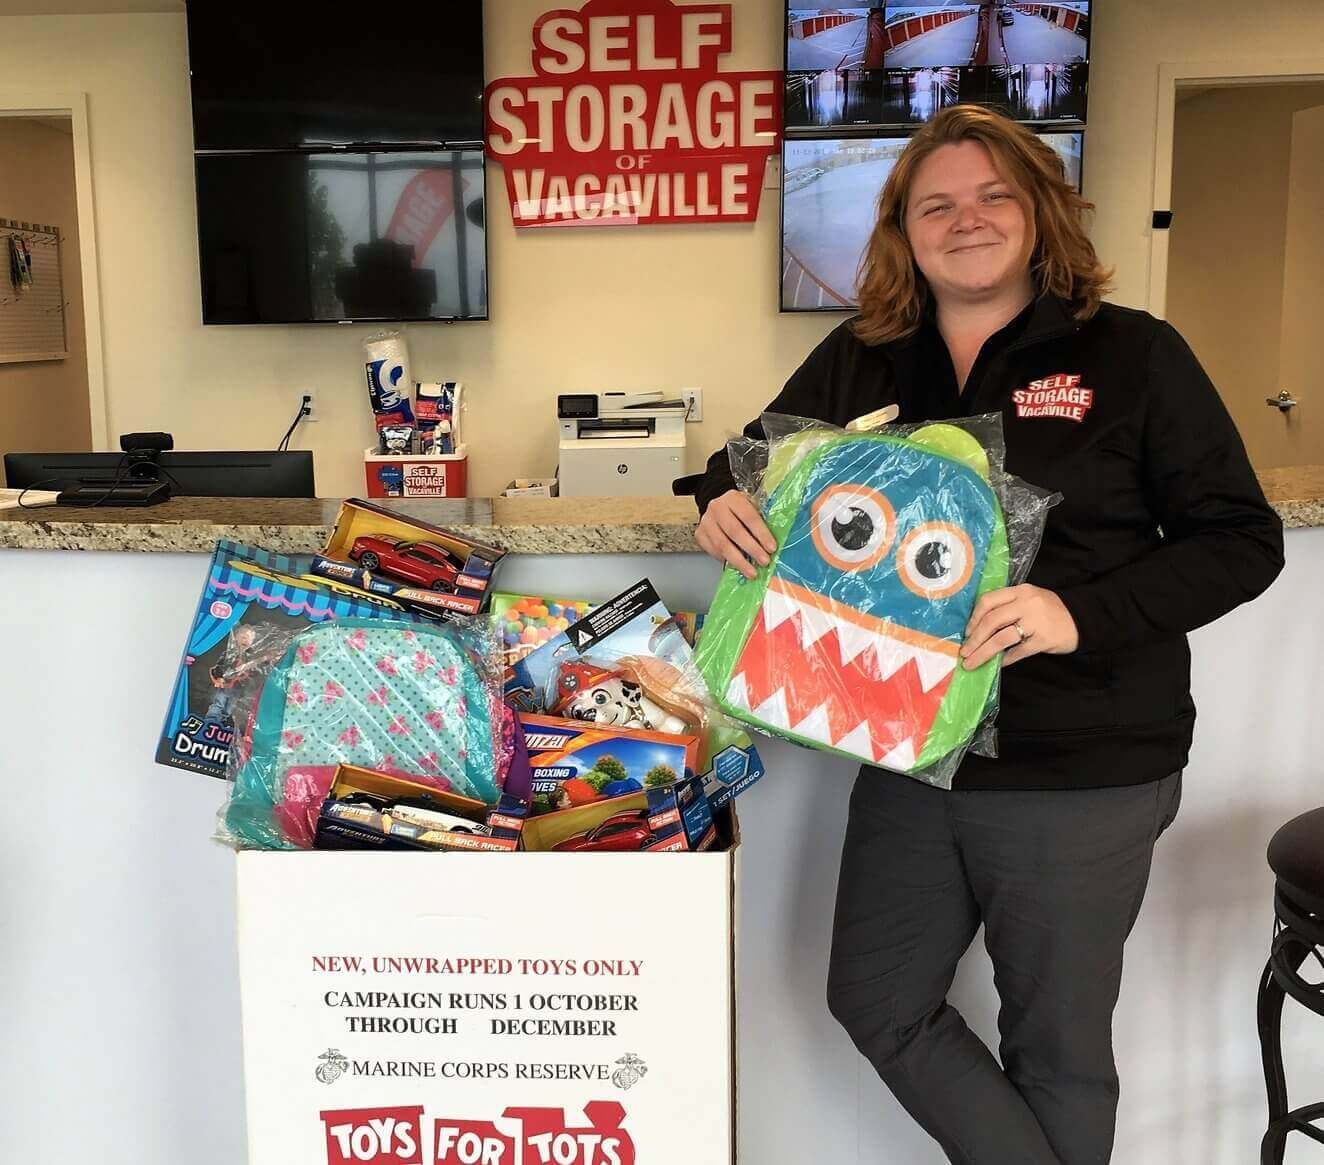 Self Storage of Vacaville Supports the Marine Corps Toys For Tots